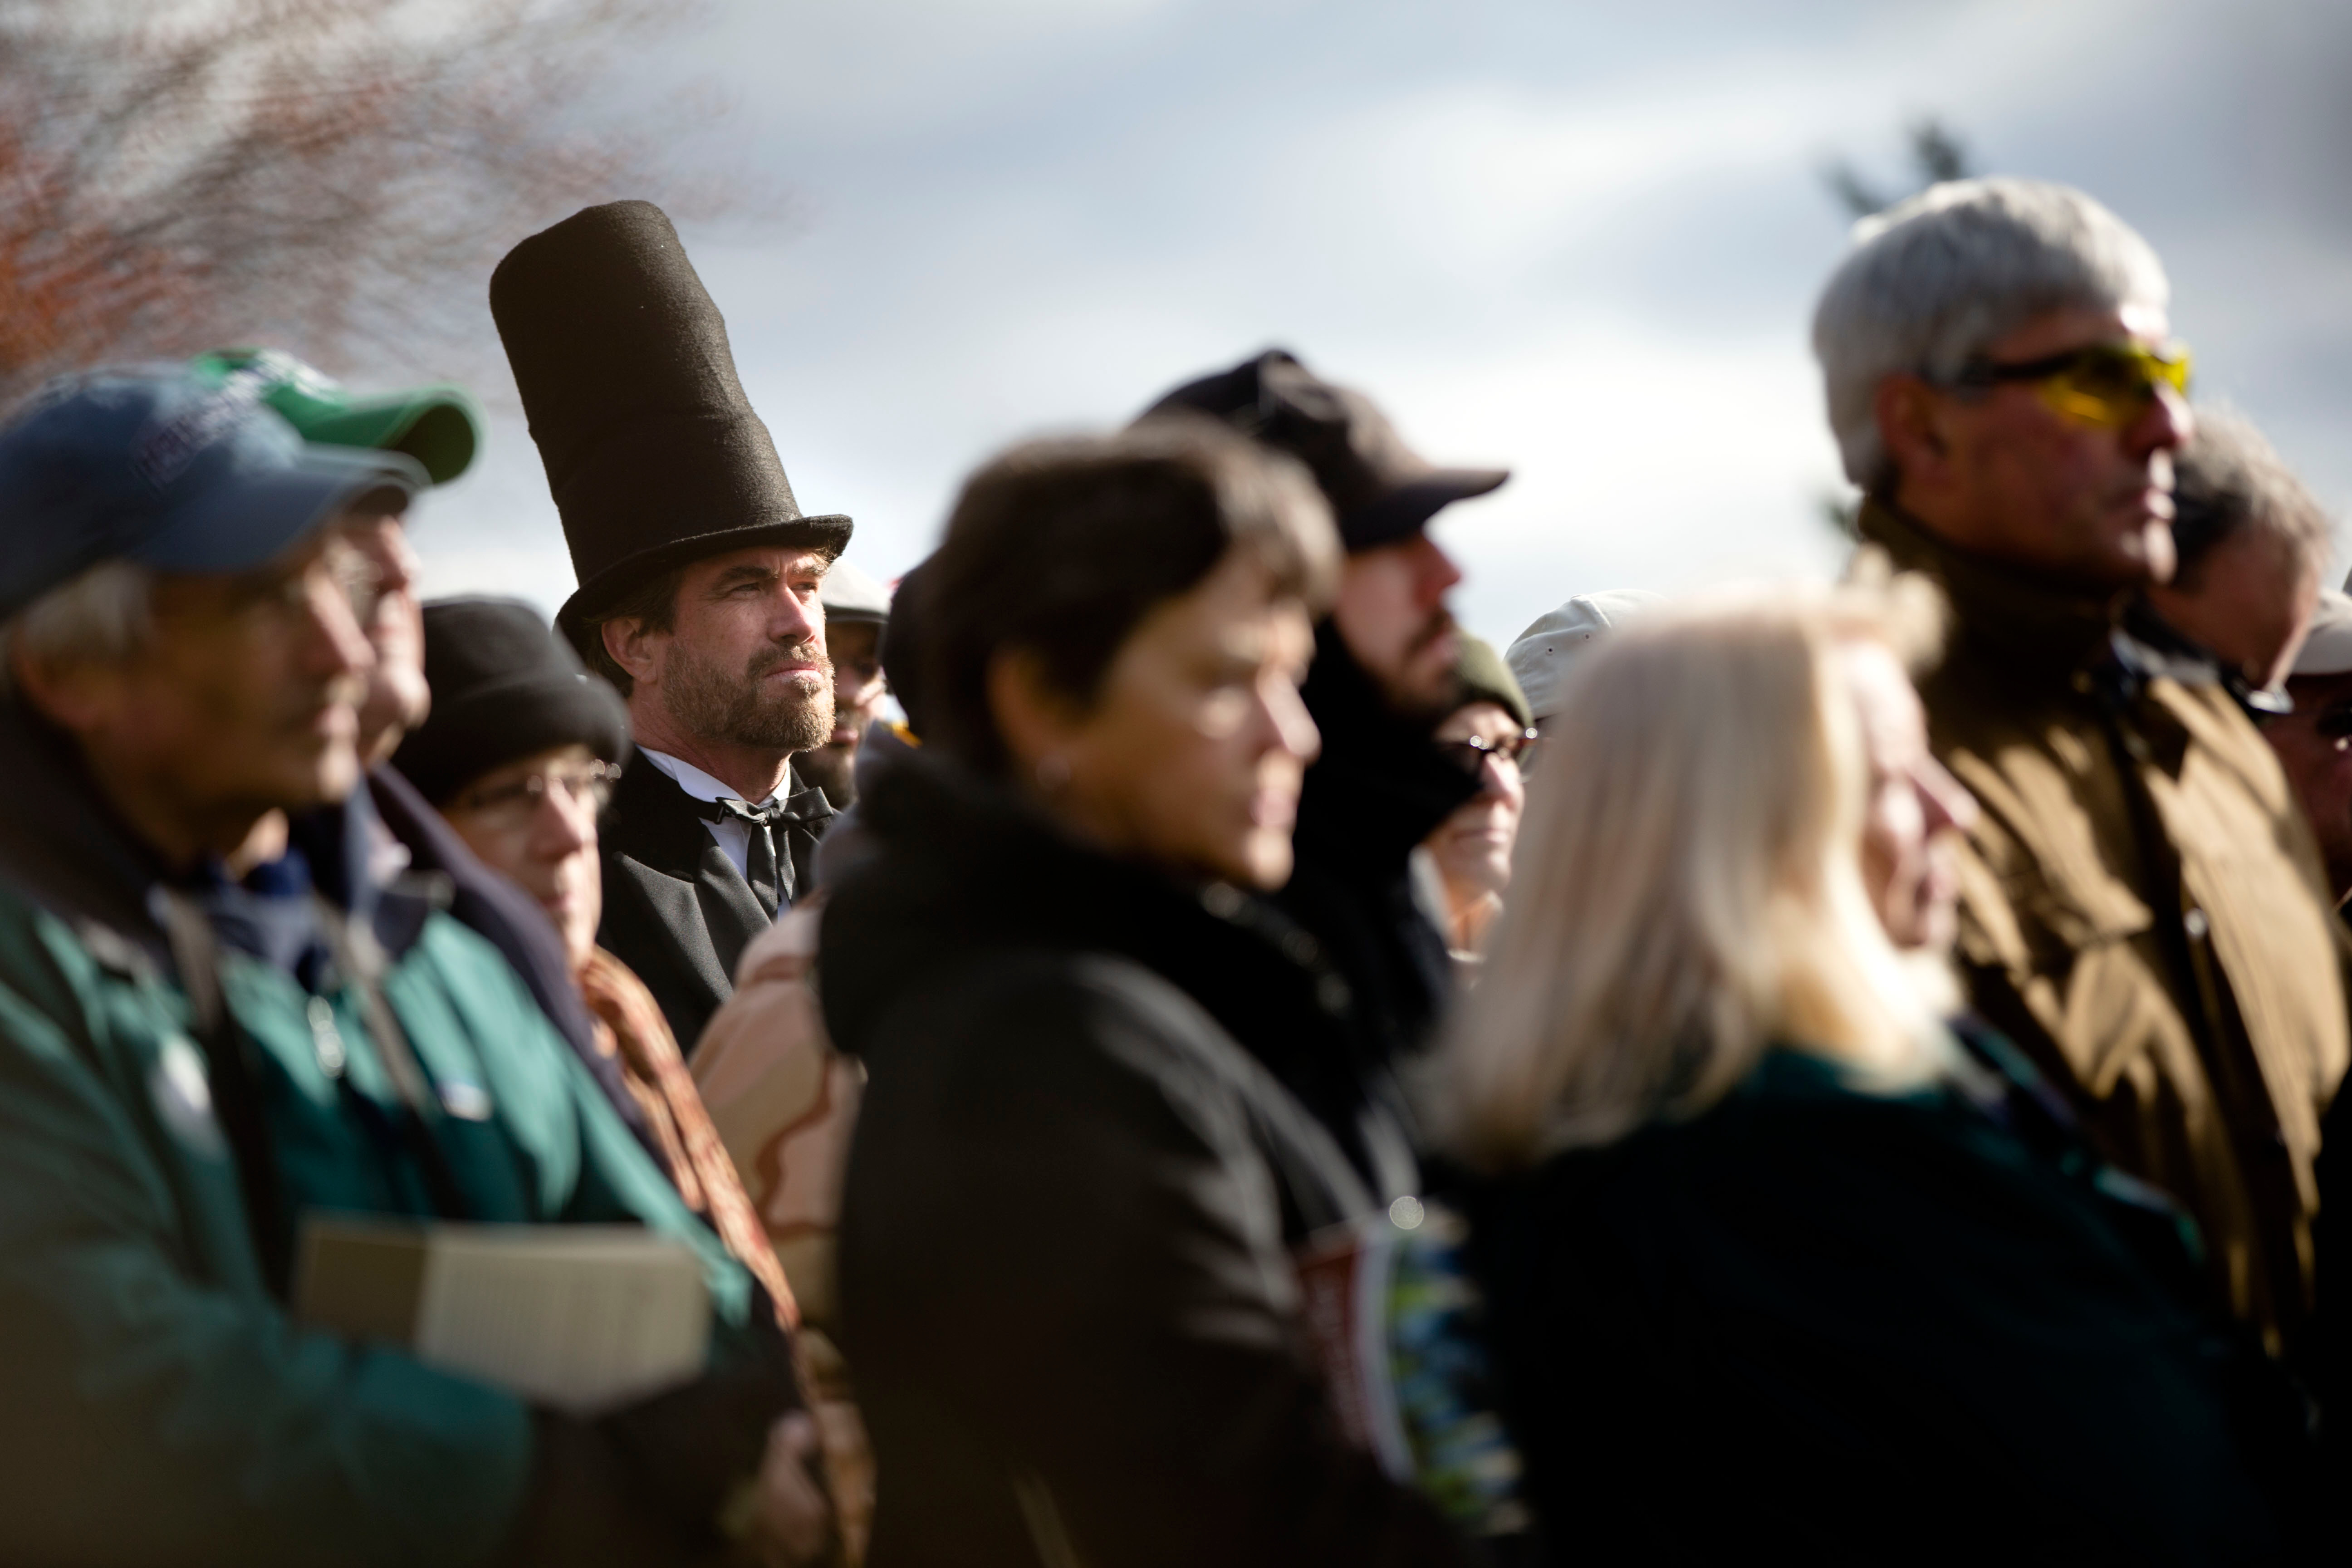 A re-enactor stands with audience members during a ceremony commemorating the 150th anniversary of the dedication of the Soldiers National Cemetery and President Abraham Lincoln